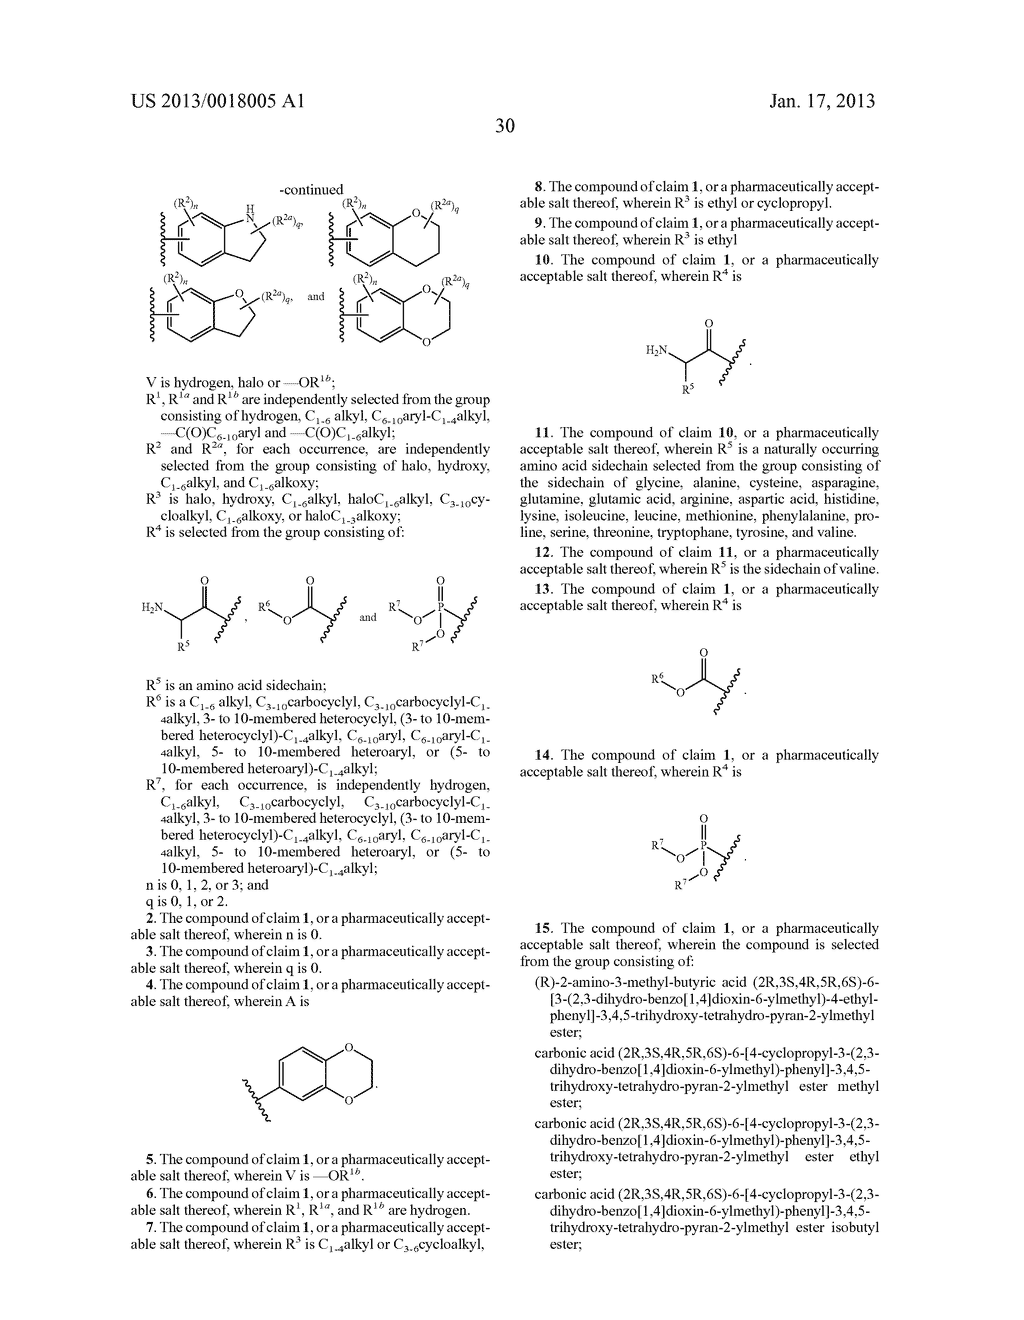 GLYCOSIDE DERIVATIVES AND USES THEREOF - diagram, schematic, and image 31